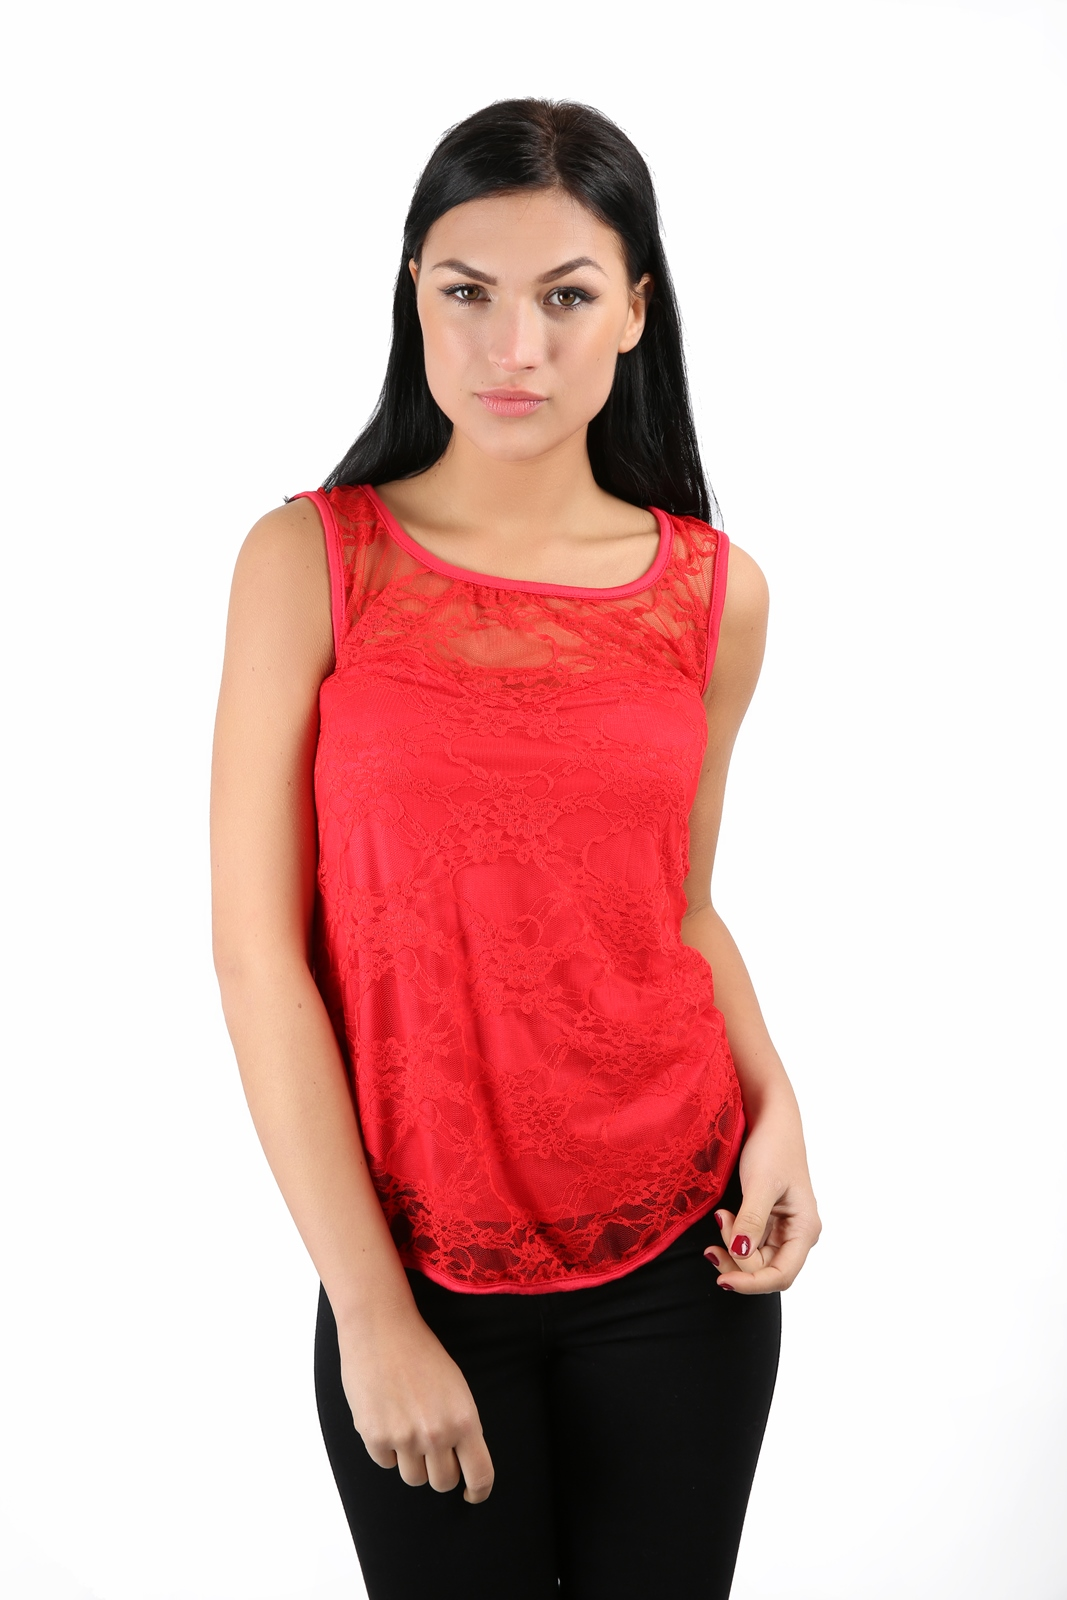 Ladies sleeveless stretch bodycon lace top womens vest top for Sleeveless shirts for ladies